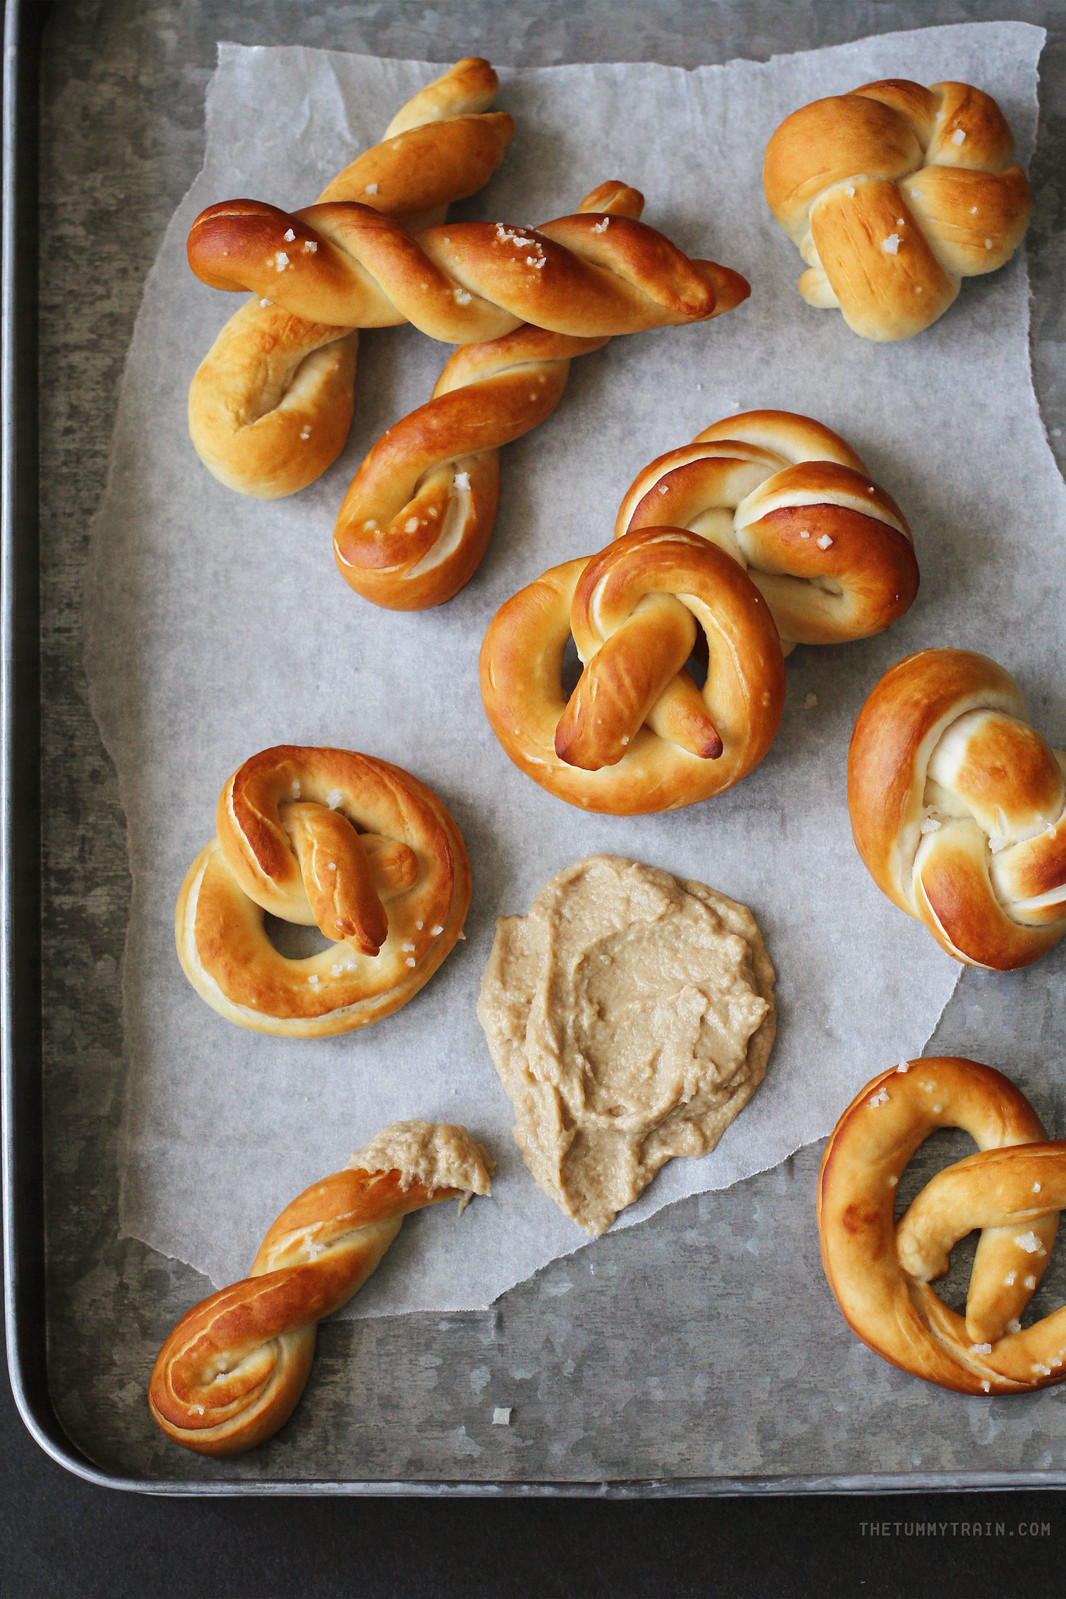 30673784141 651d4c5e2b h - Pretzels with Mustard Dip attempted out of curiosity + a tutorial on how to shape pretzels